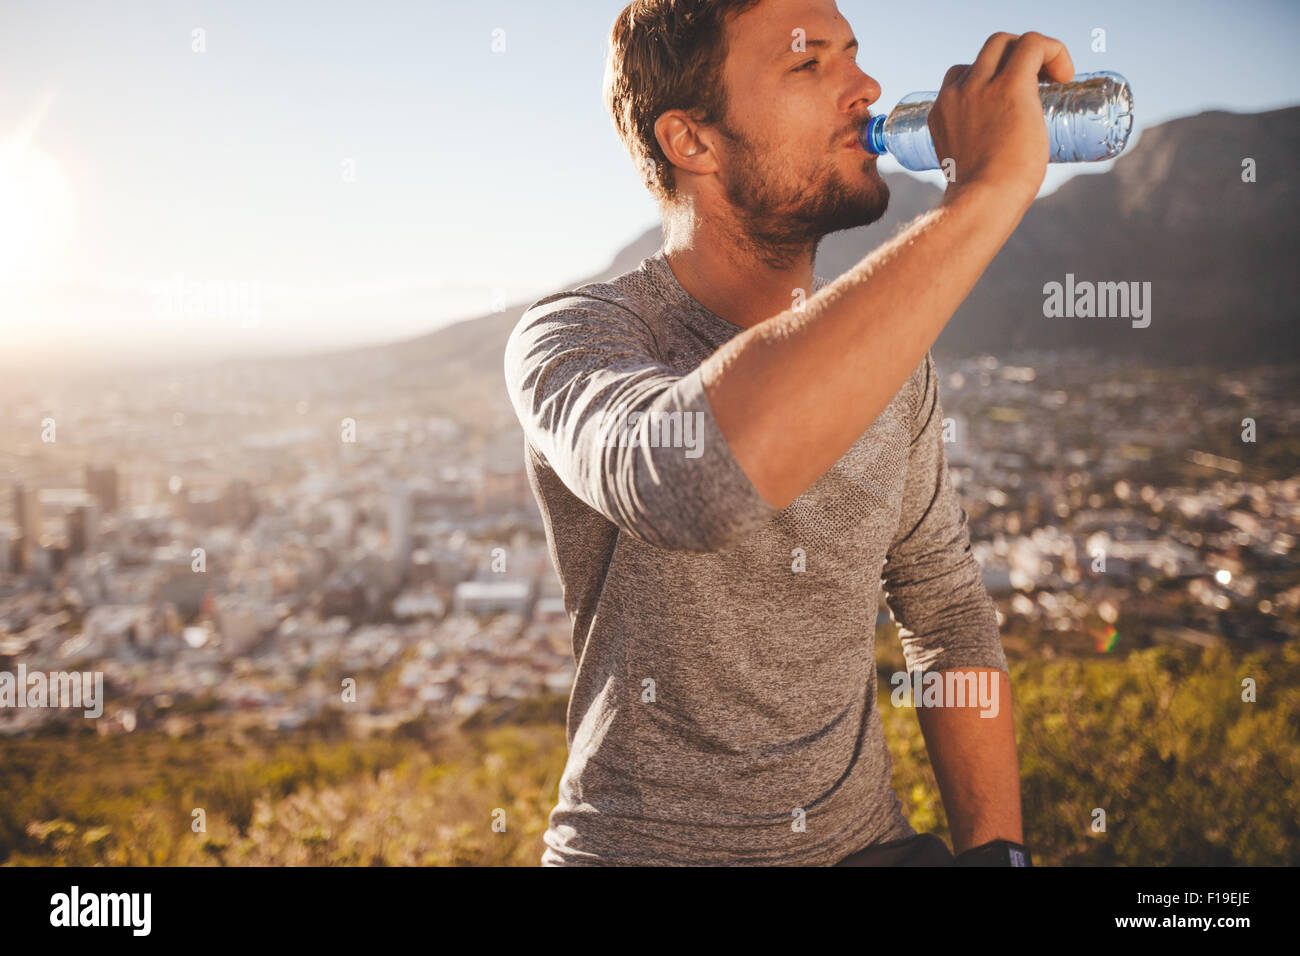 Young runner taking a break after morning run drinking water. Young man relaxing after a running training session Stock Photo